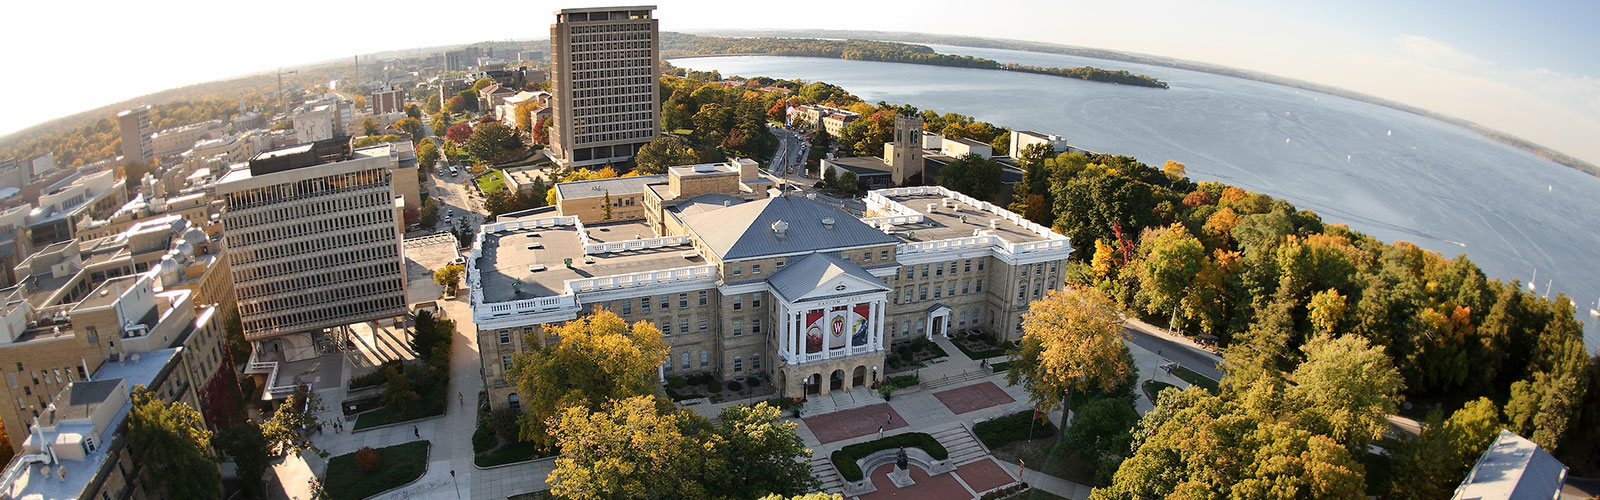 Aerial shot of Bascom hall with Lake Mendota in background